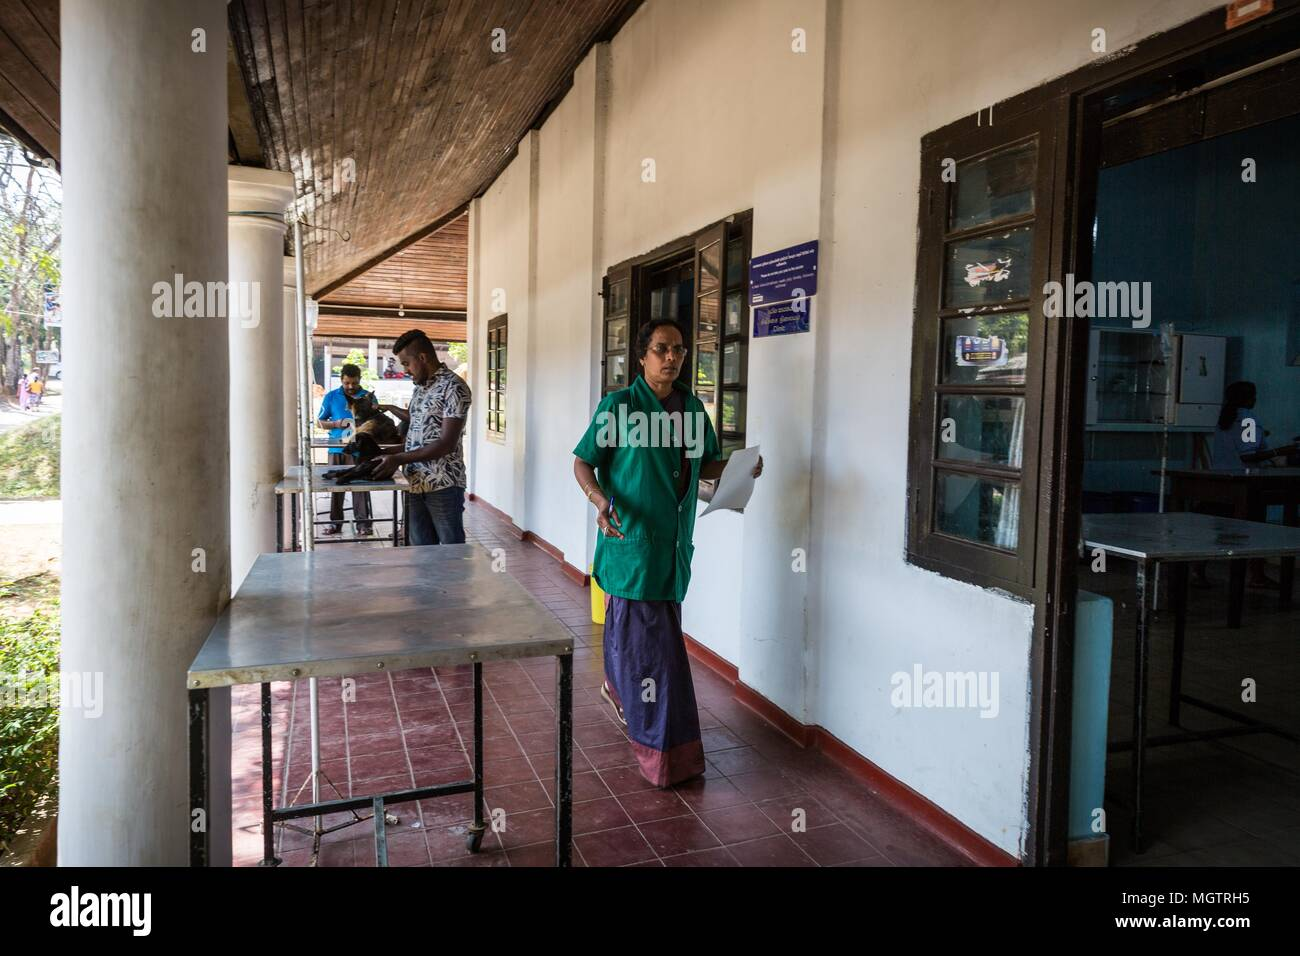 Dr. 18th Feb, 2018. MANOHARI moves between her four-legged patients at the Government Veterinary Hospital clinic in the Peradeniya region of Kandy, Sri Lanka, on Sunday, February 18, 2018.MANOHARI, a Hindu, married in 1991. She started her veterinary practice in 1992 while she was pregnant. She started working at this hospital in 1993.She and her husband, a Muslim, have two sons and a daughter. Her sons are currently studying for higher degrees in the United States and Nepal.MANOHARI looks after her 86-year-old mother who is experiencing dementia. (Credit Image: © Tracy Barbutes via Z - Stock Image